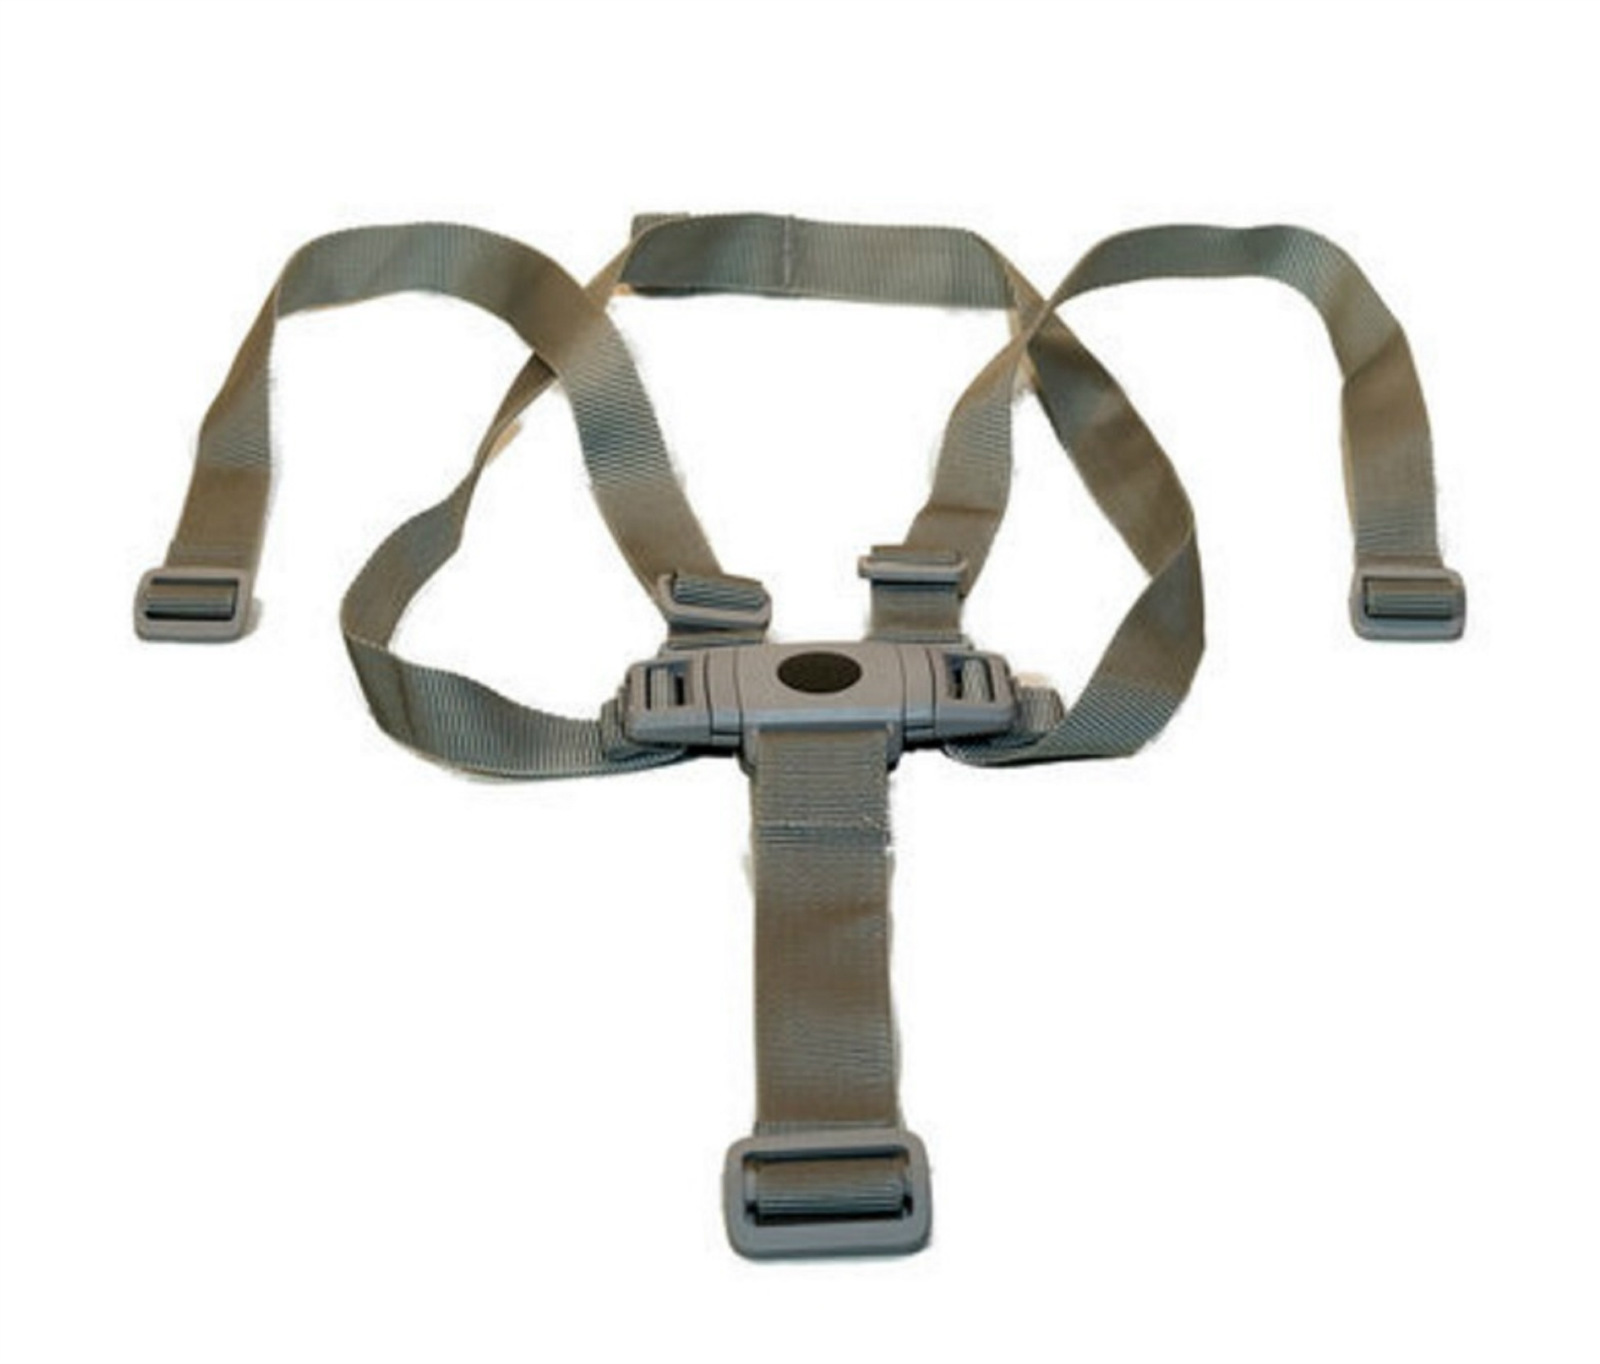 Replacement 5 Pt Harness Straps for Chicco Polly Progress High